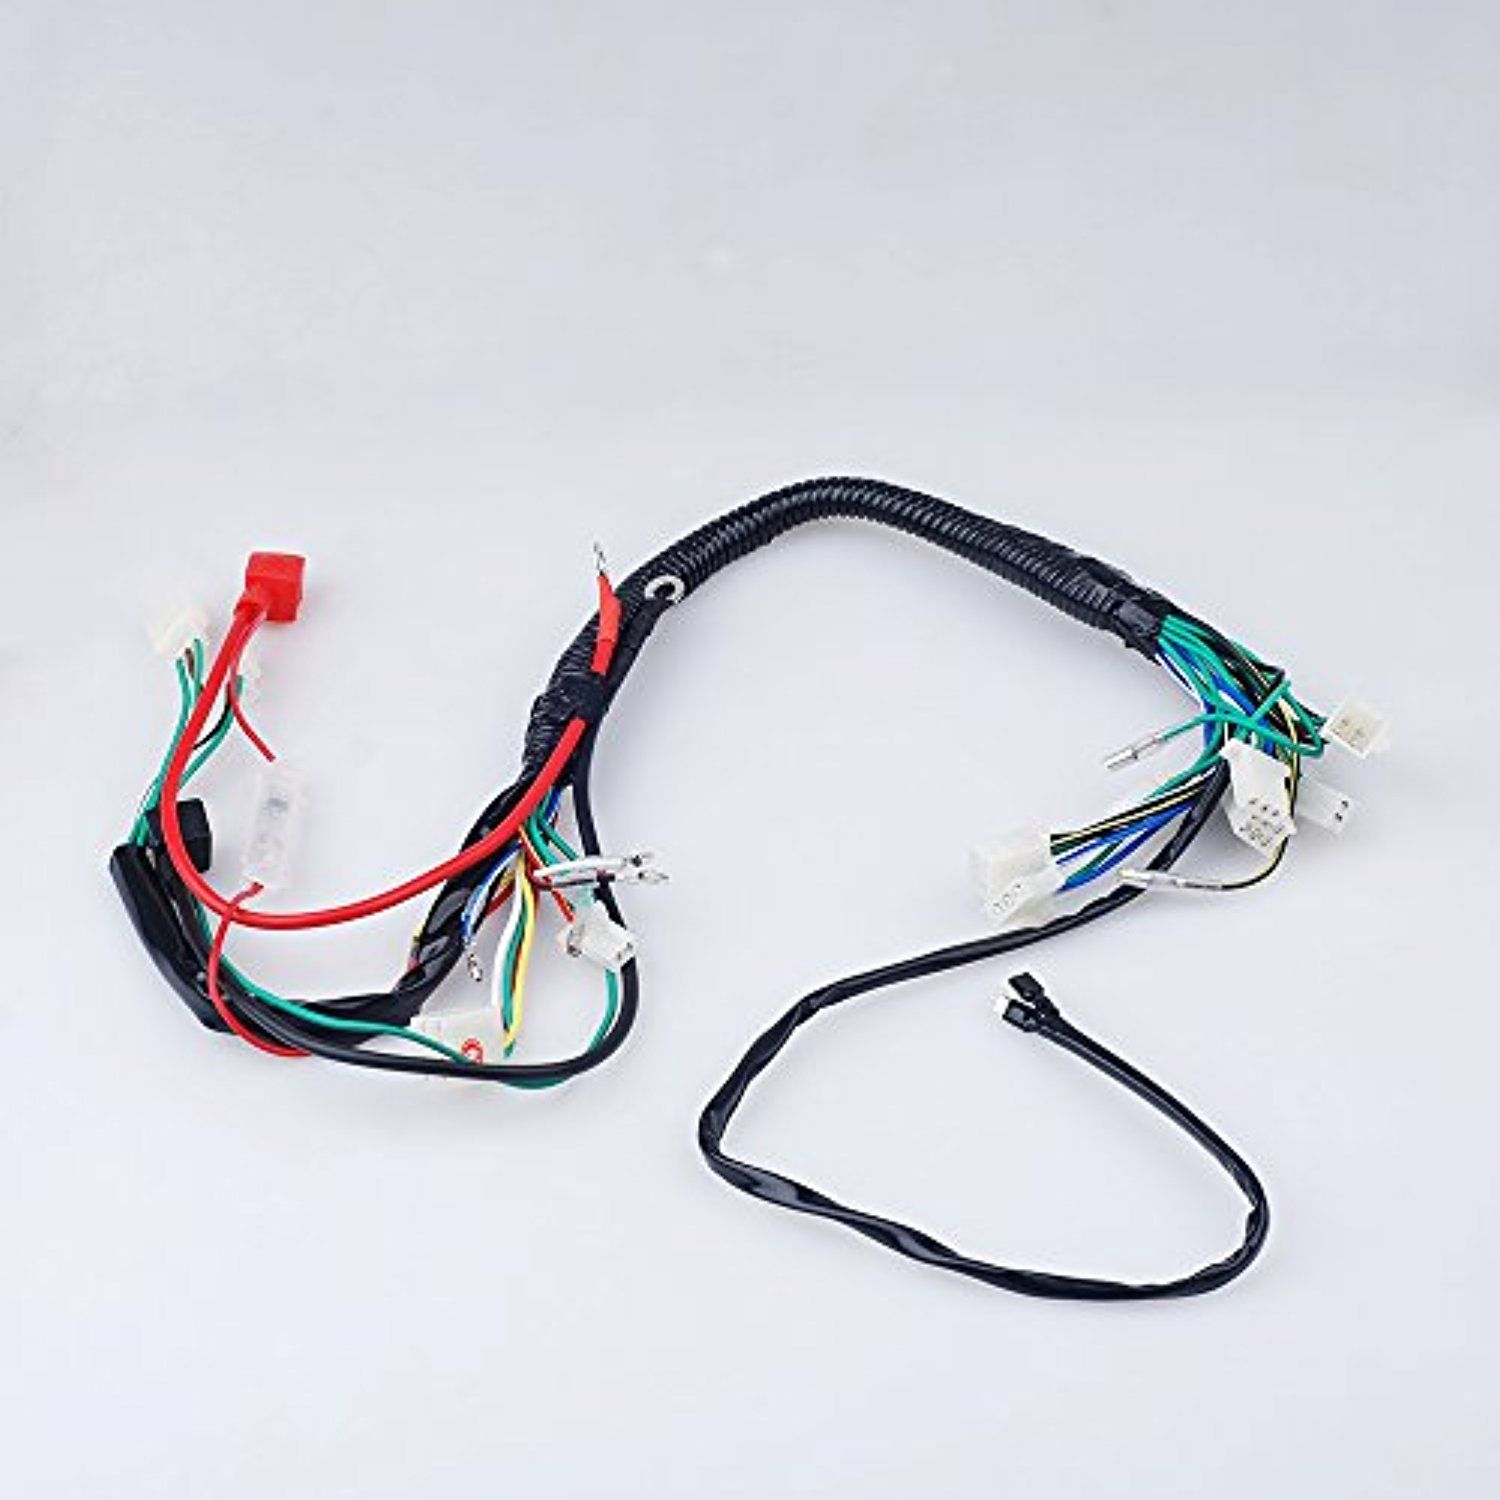 Electric Start Wiring Harness Wire Loom Pit Bike Atv Quads 50 110 Emission 125cc Go Kart Awesome Products Selected By Anna Churchill